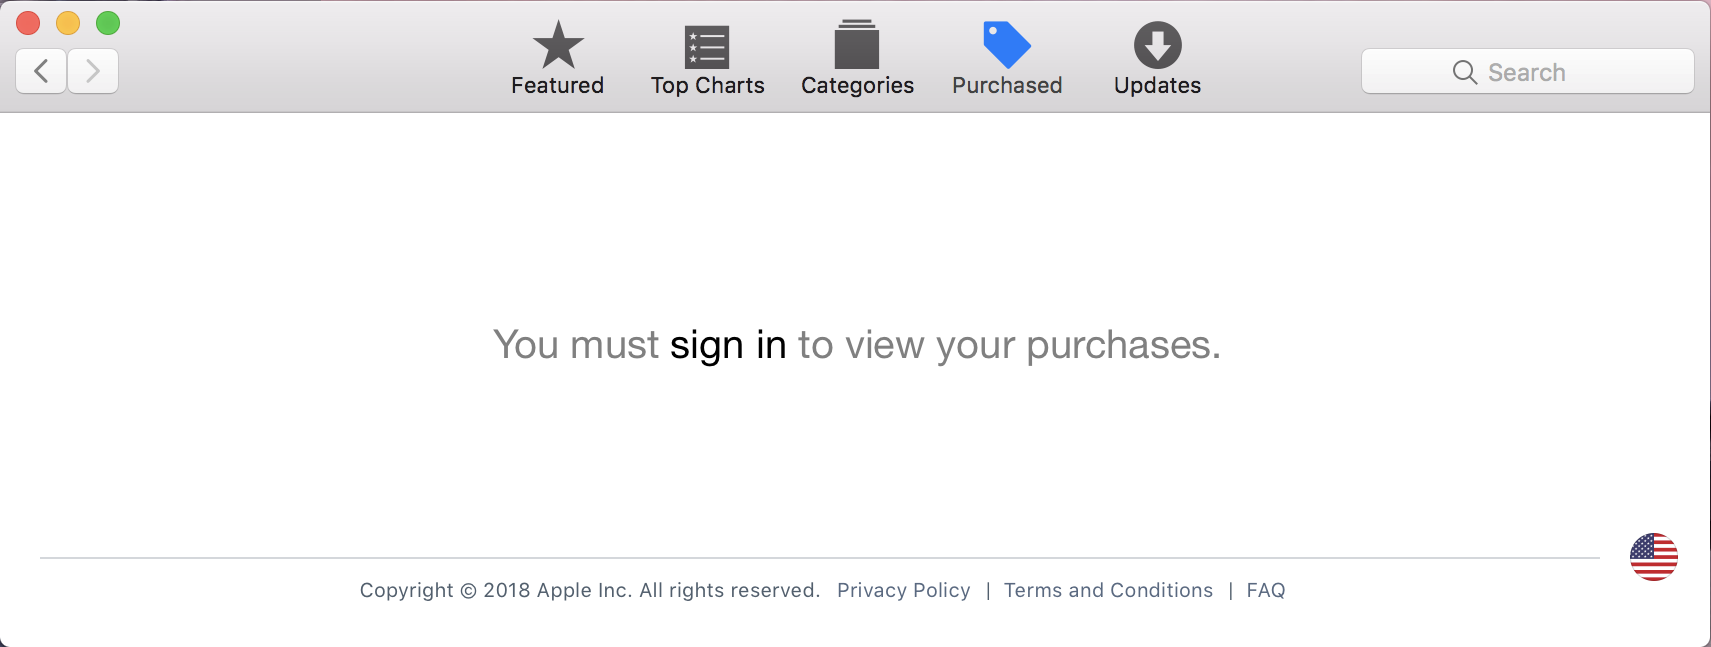 sign in to see your purchases - mac app store